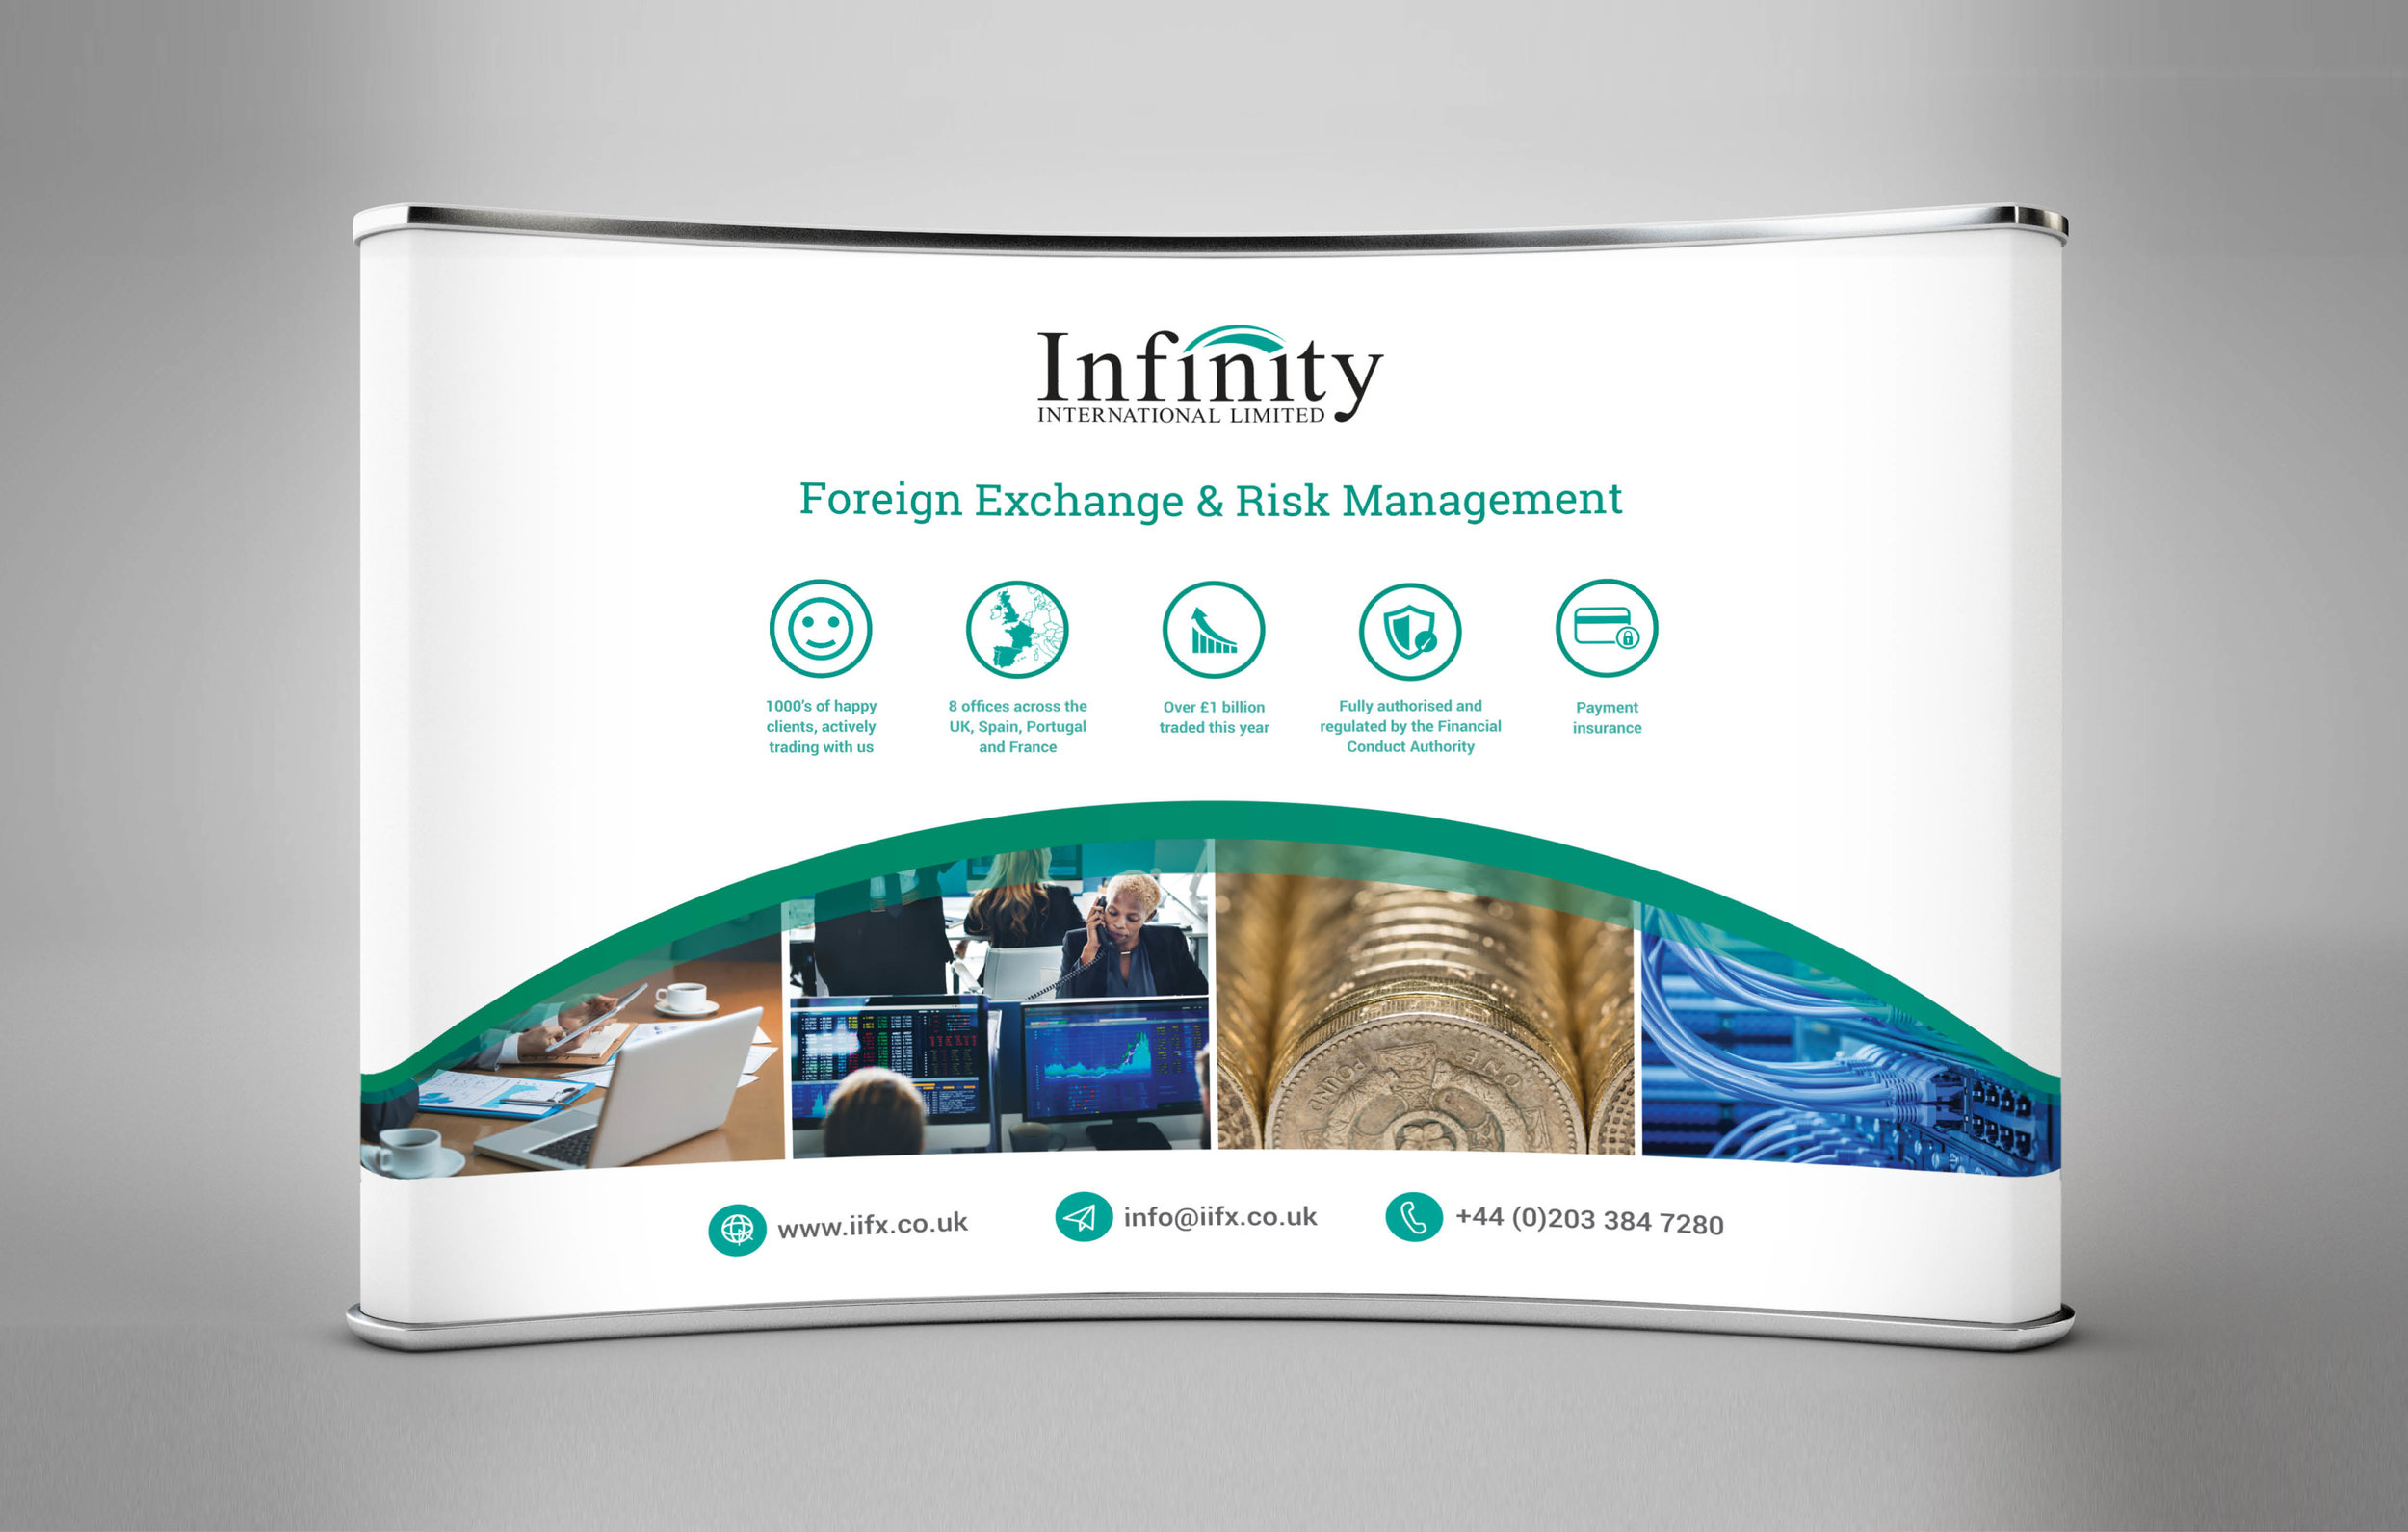 infinity-international-exhibition2.jpg